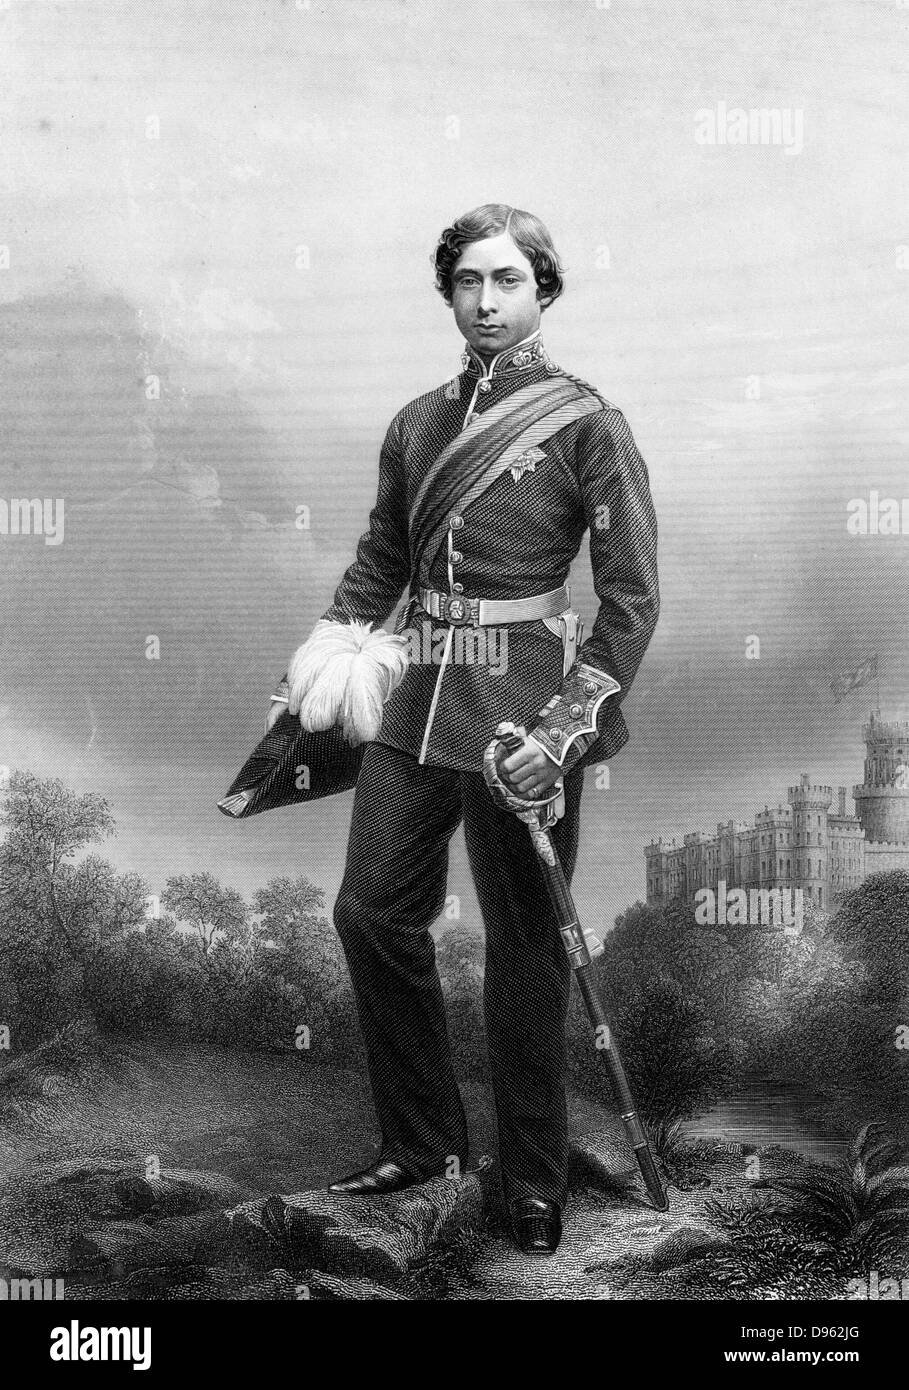 Edward VII (1841-1910) king of Great Britain from 1901. Here in the uniform of a Colonel when Prince of Wales. Engraving - Stock Image